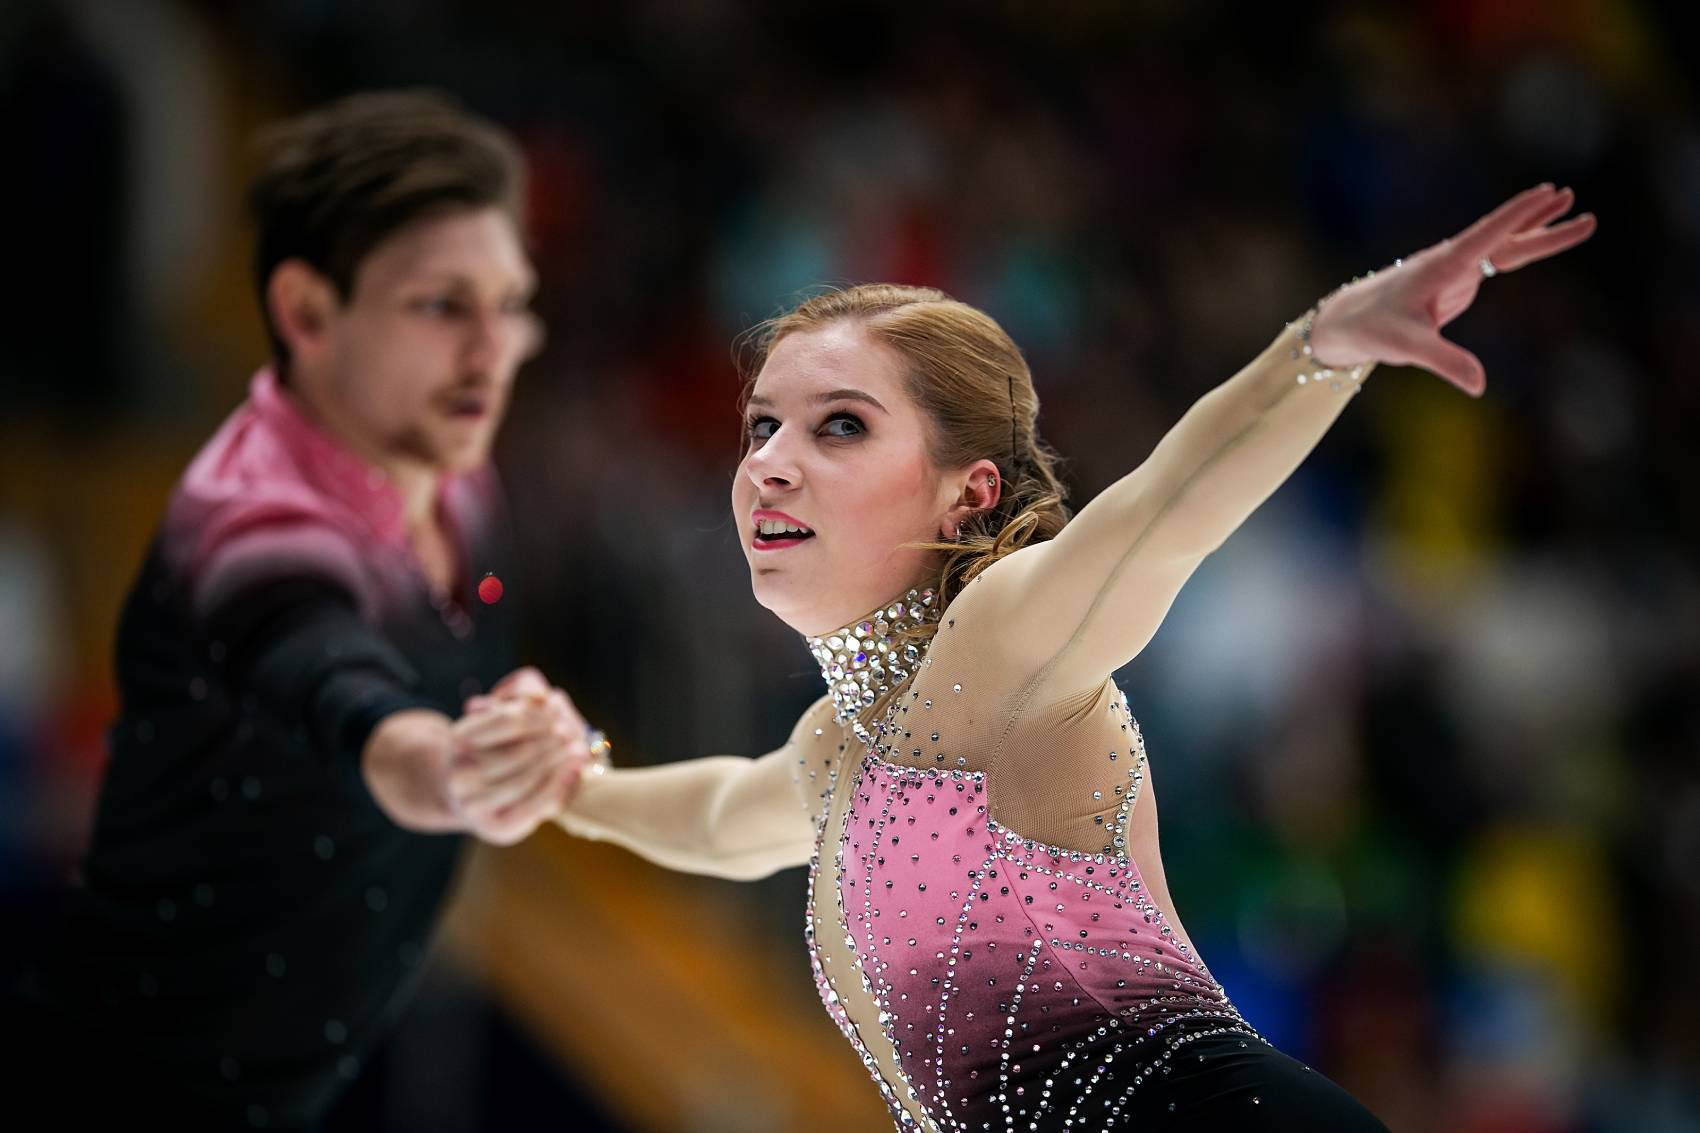 Ekaterina Alexandrovskaya, a two-time Australian national champion skater, tragically died at the age of 20.